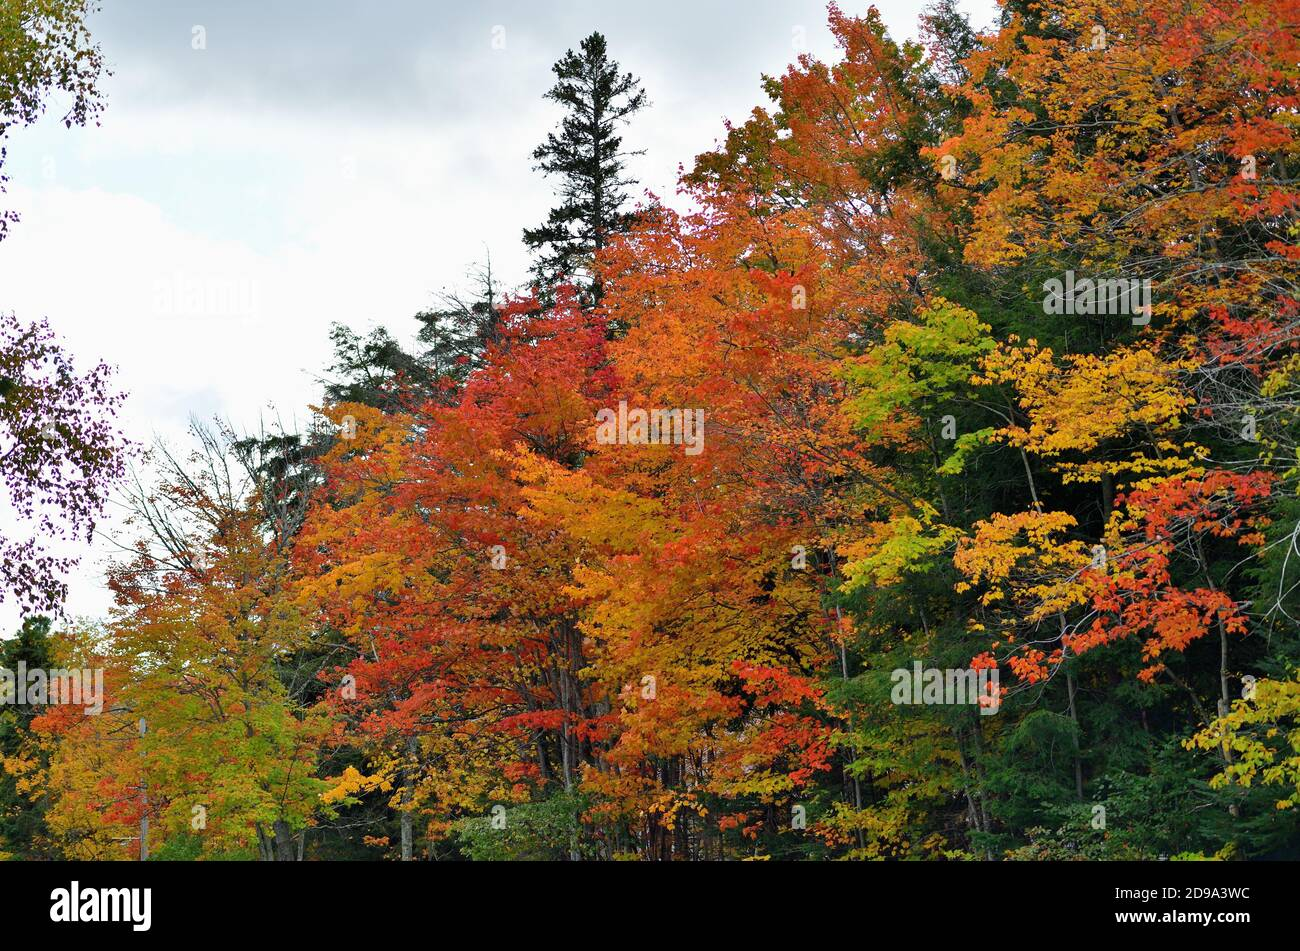 Paradise, Michigan, USA. Fall descends on a stretch of trees bordering a highway in the Upper Peninsula of Michigan. Stock Photo